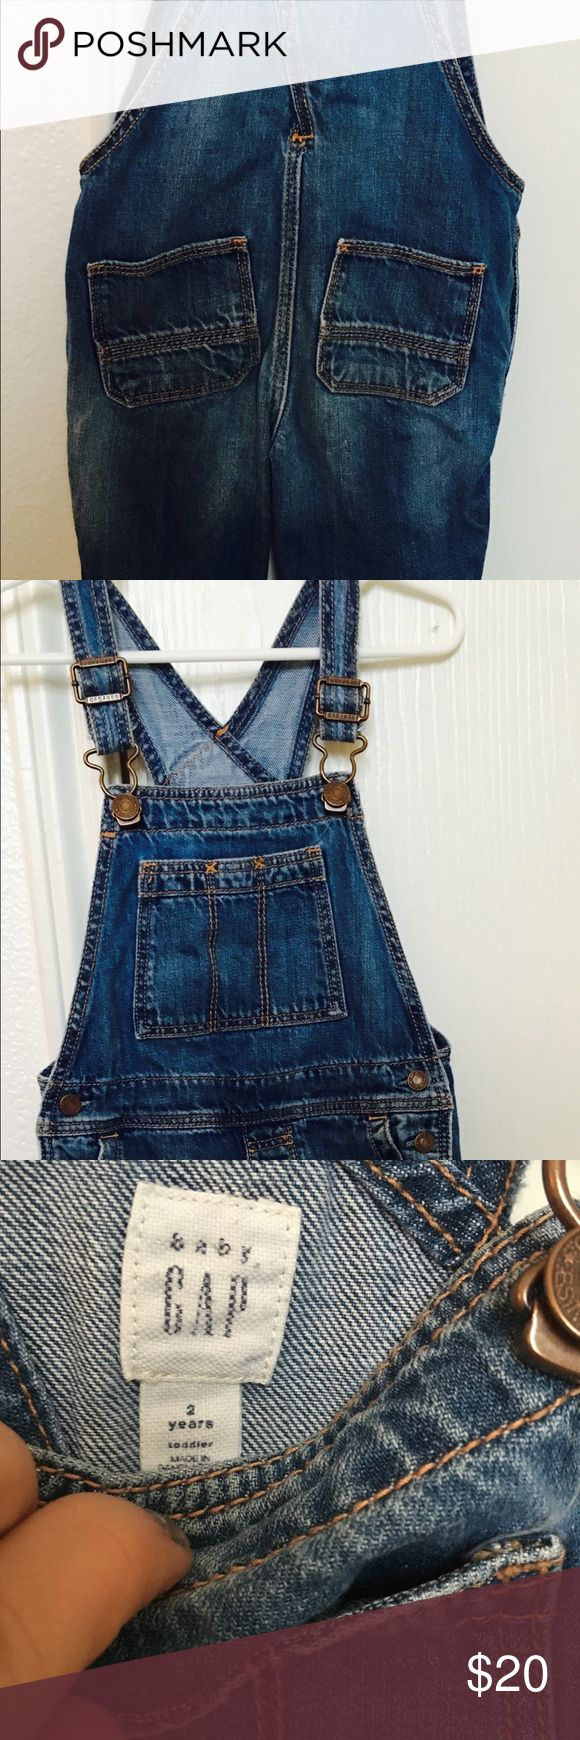 2T overall for girls Used but in excellent condition GAP Bottoms Overalls